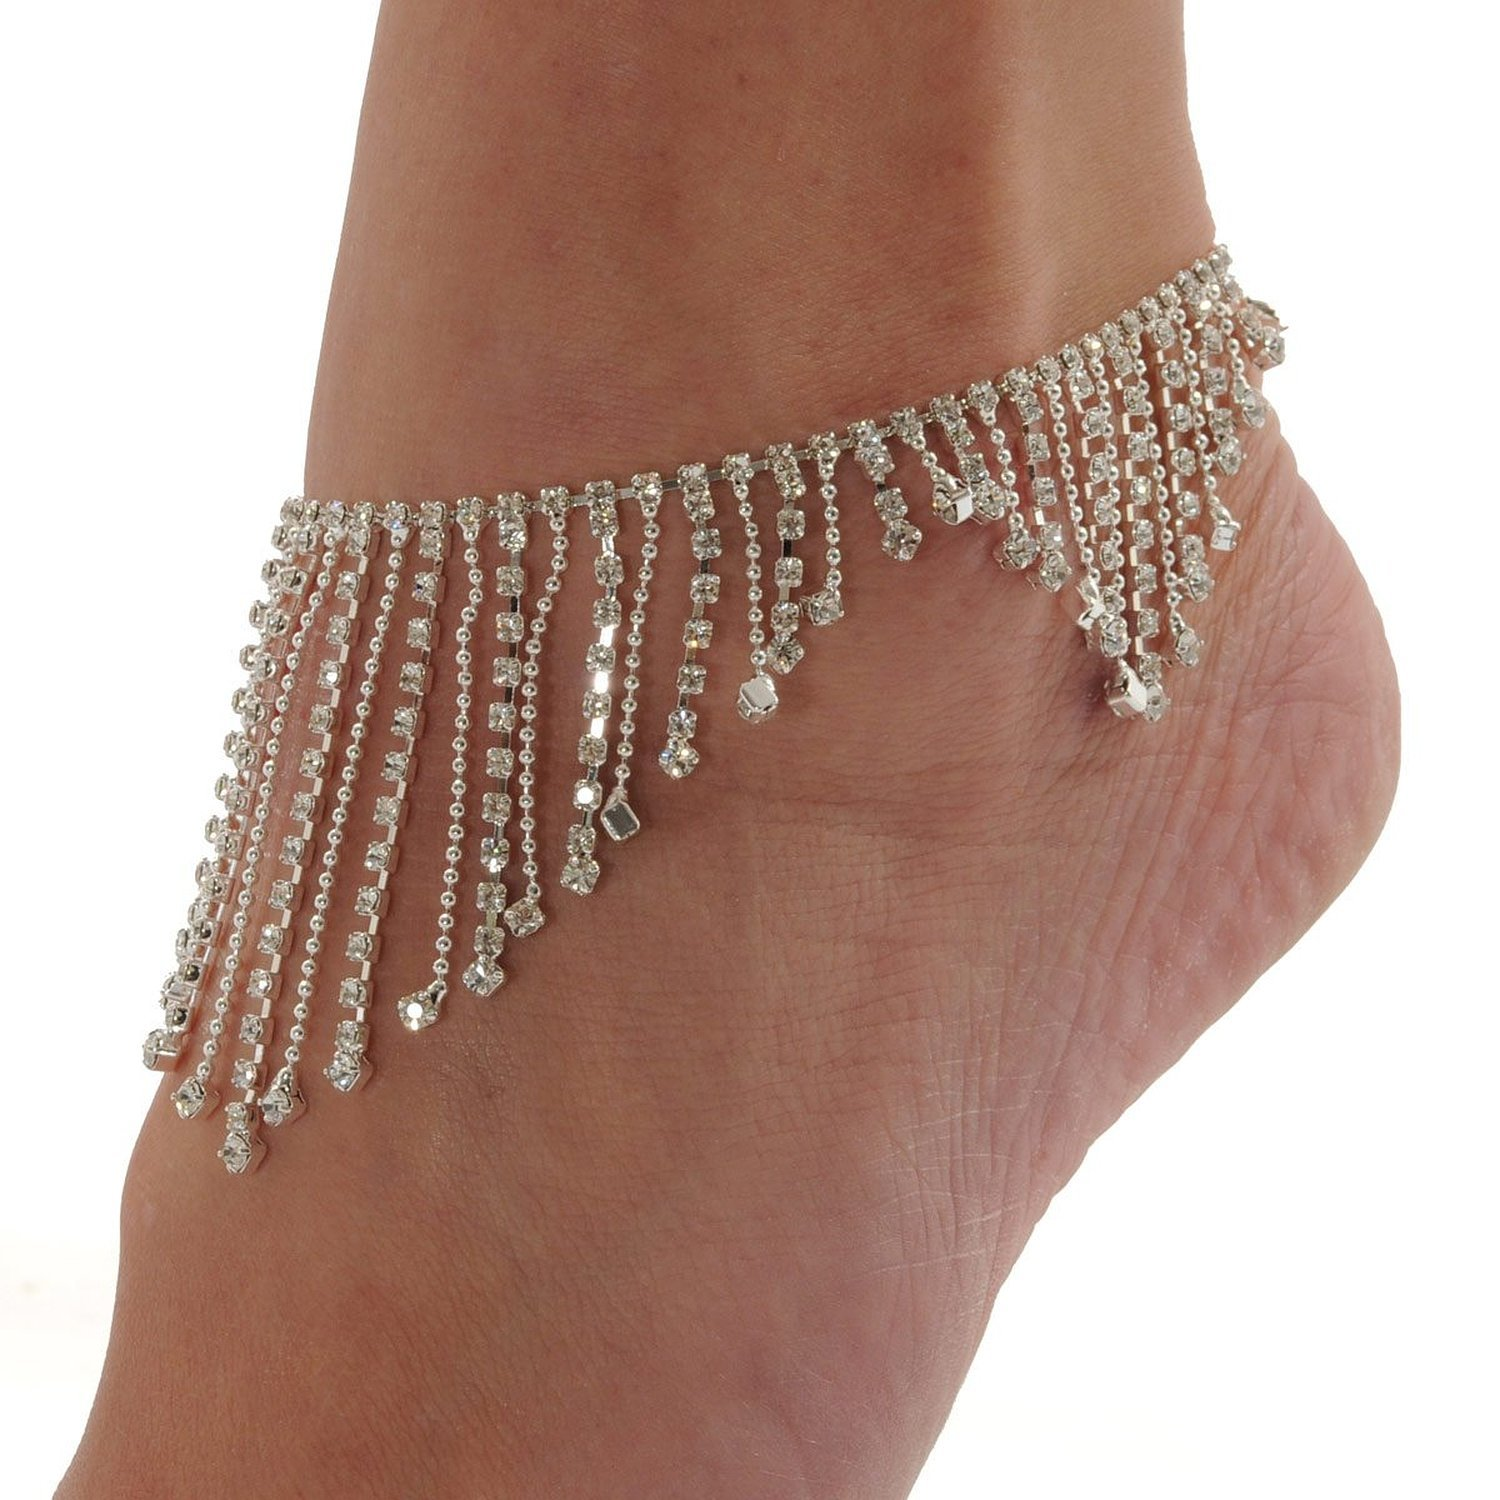 watches hogies elements bracelet with anklet tennis crystal ladies accessories ankle duke swarovski jewellery